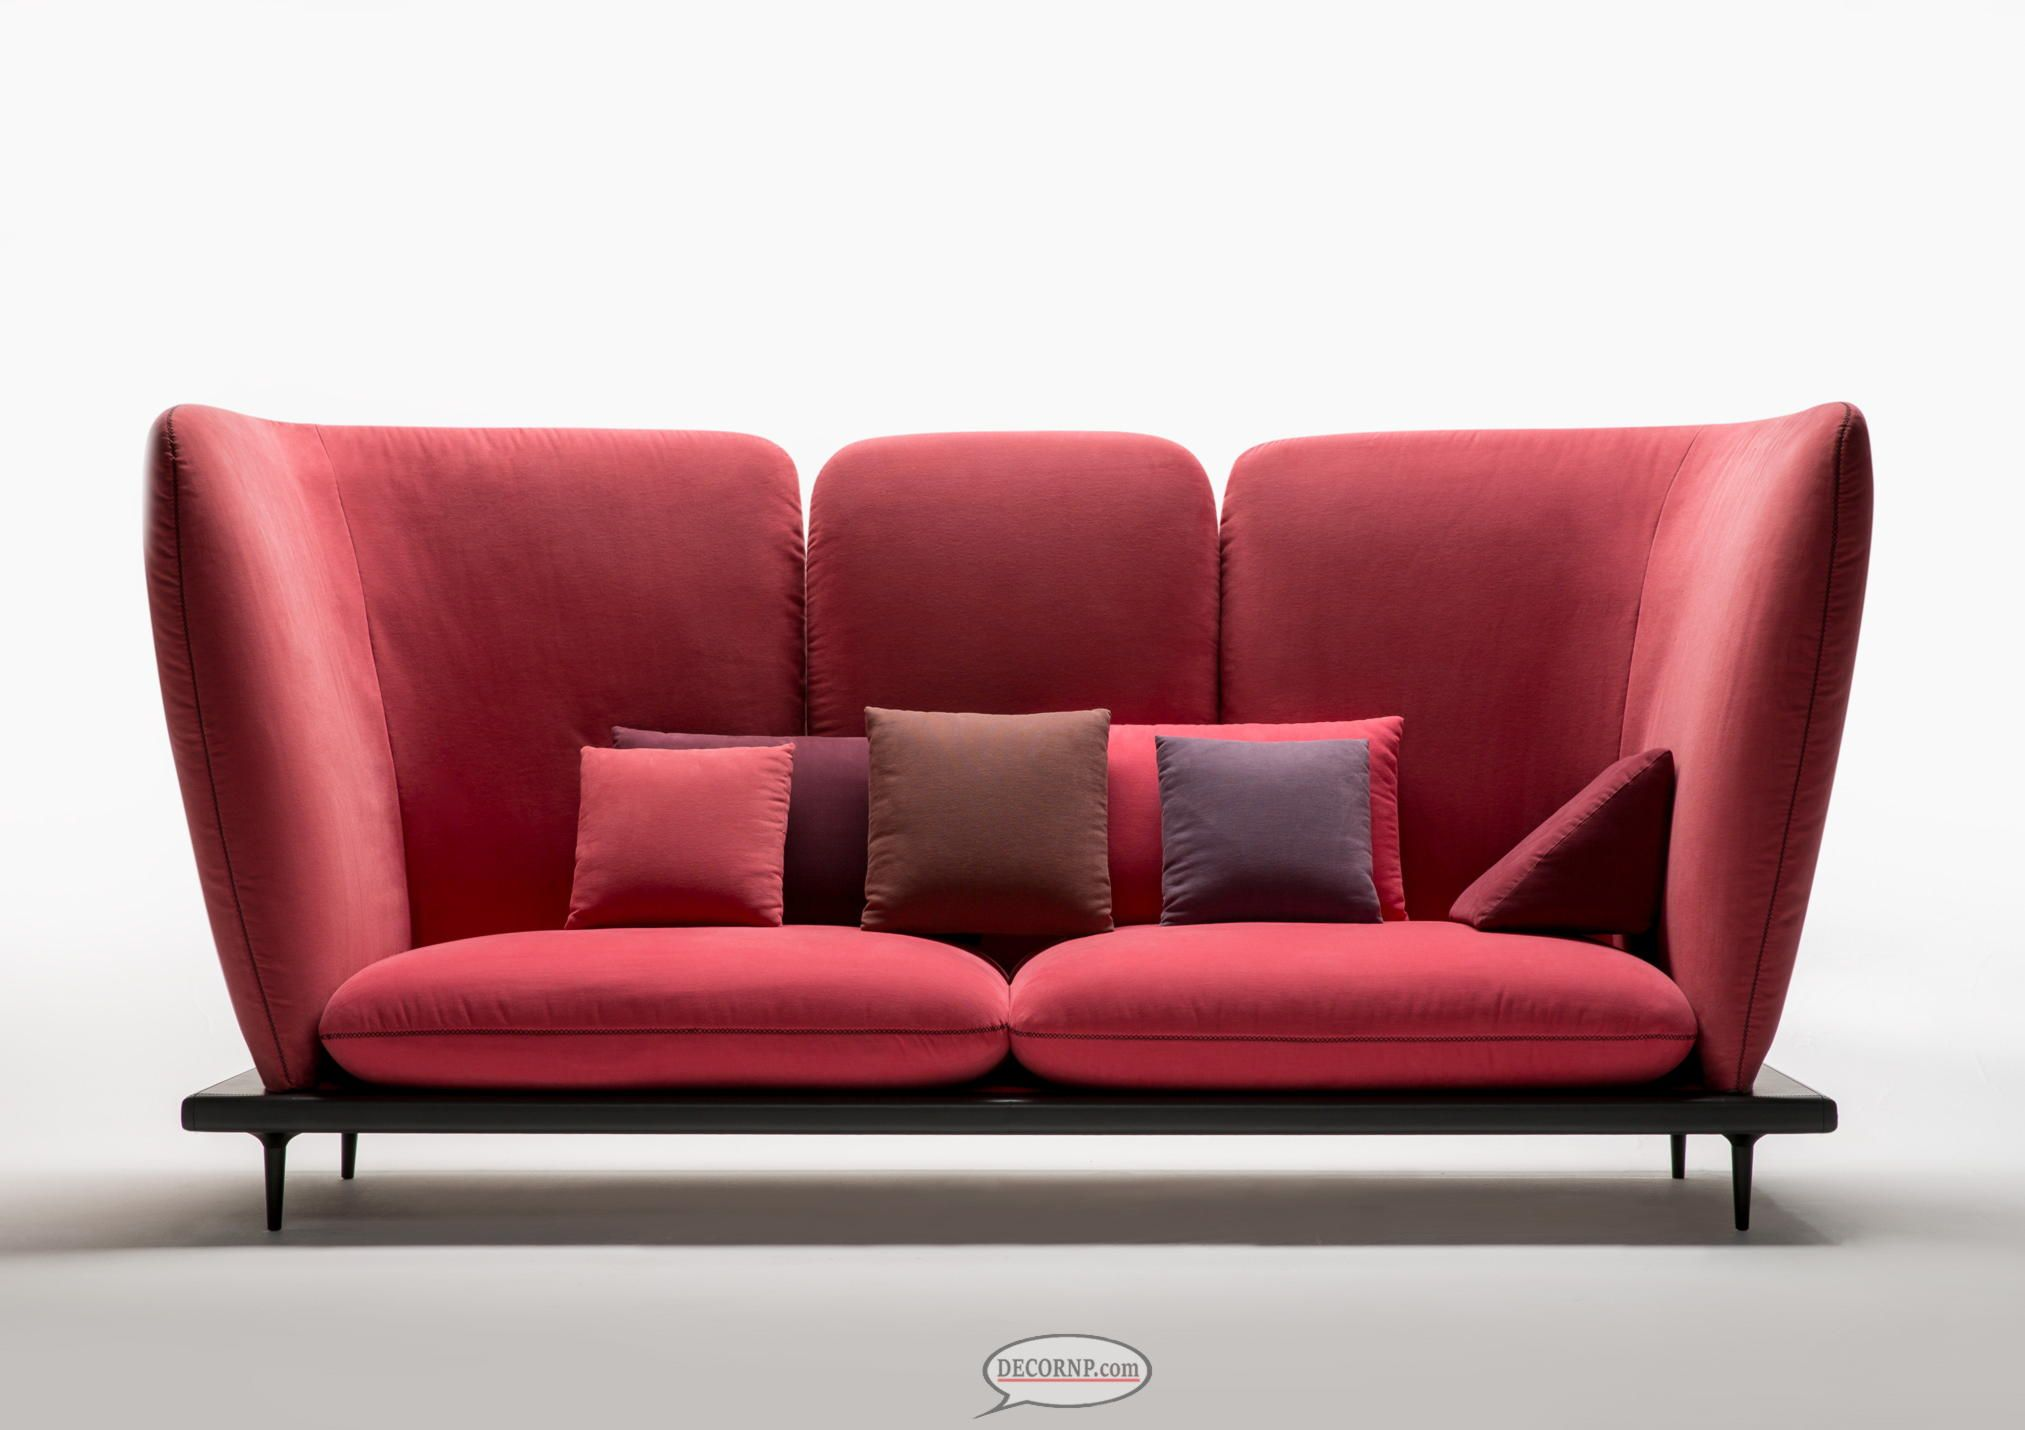 Account Suspended Italian Sofa Designs Couch Design Sofa And Loveseat Set